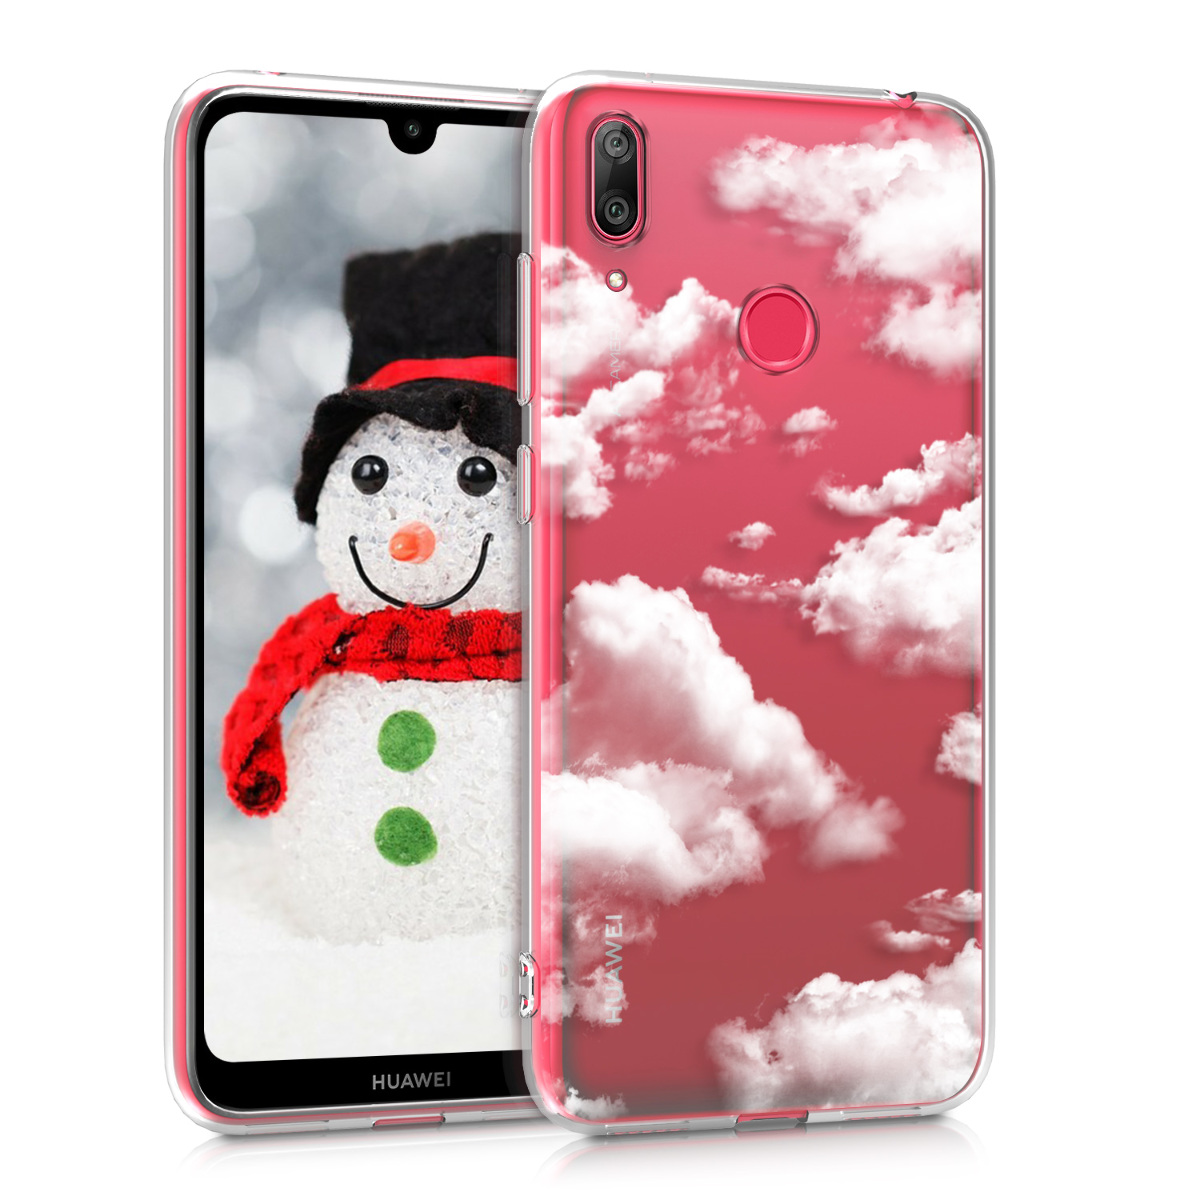 KW Θήκη Σιλικόνης Huawei Y7 2019 / Y7 Prime 2019 - Bunch of Clouds - White / Transparent (47659.22)